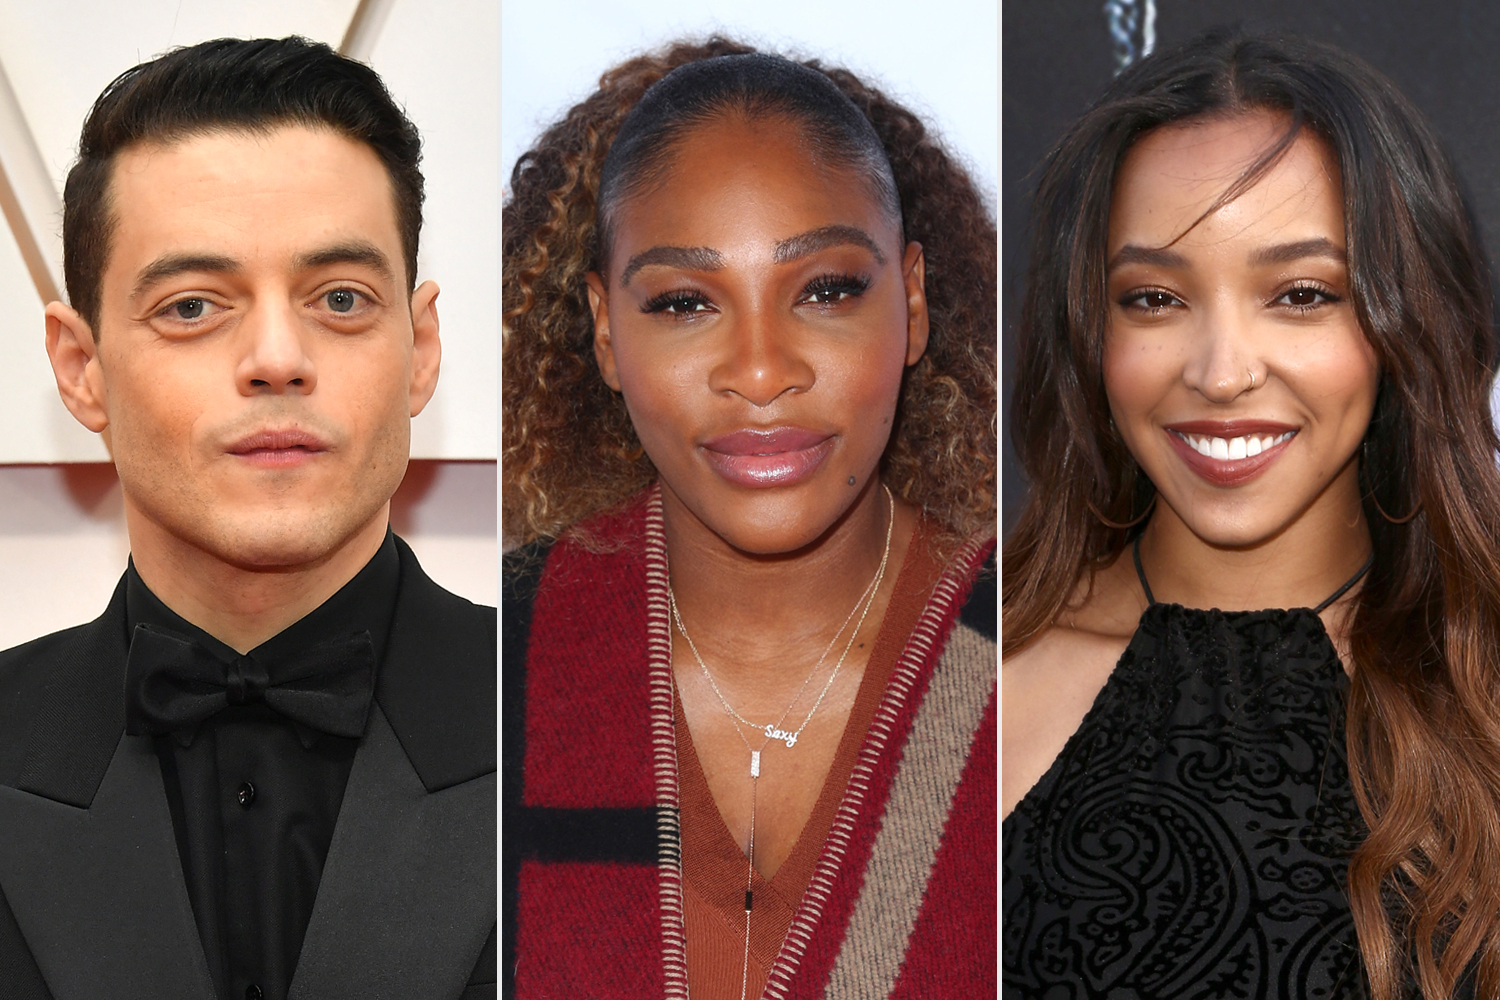 Rami Malek; Serena Williams; Tinashe